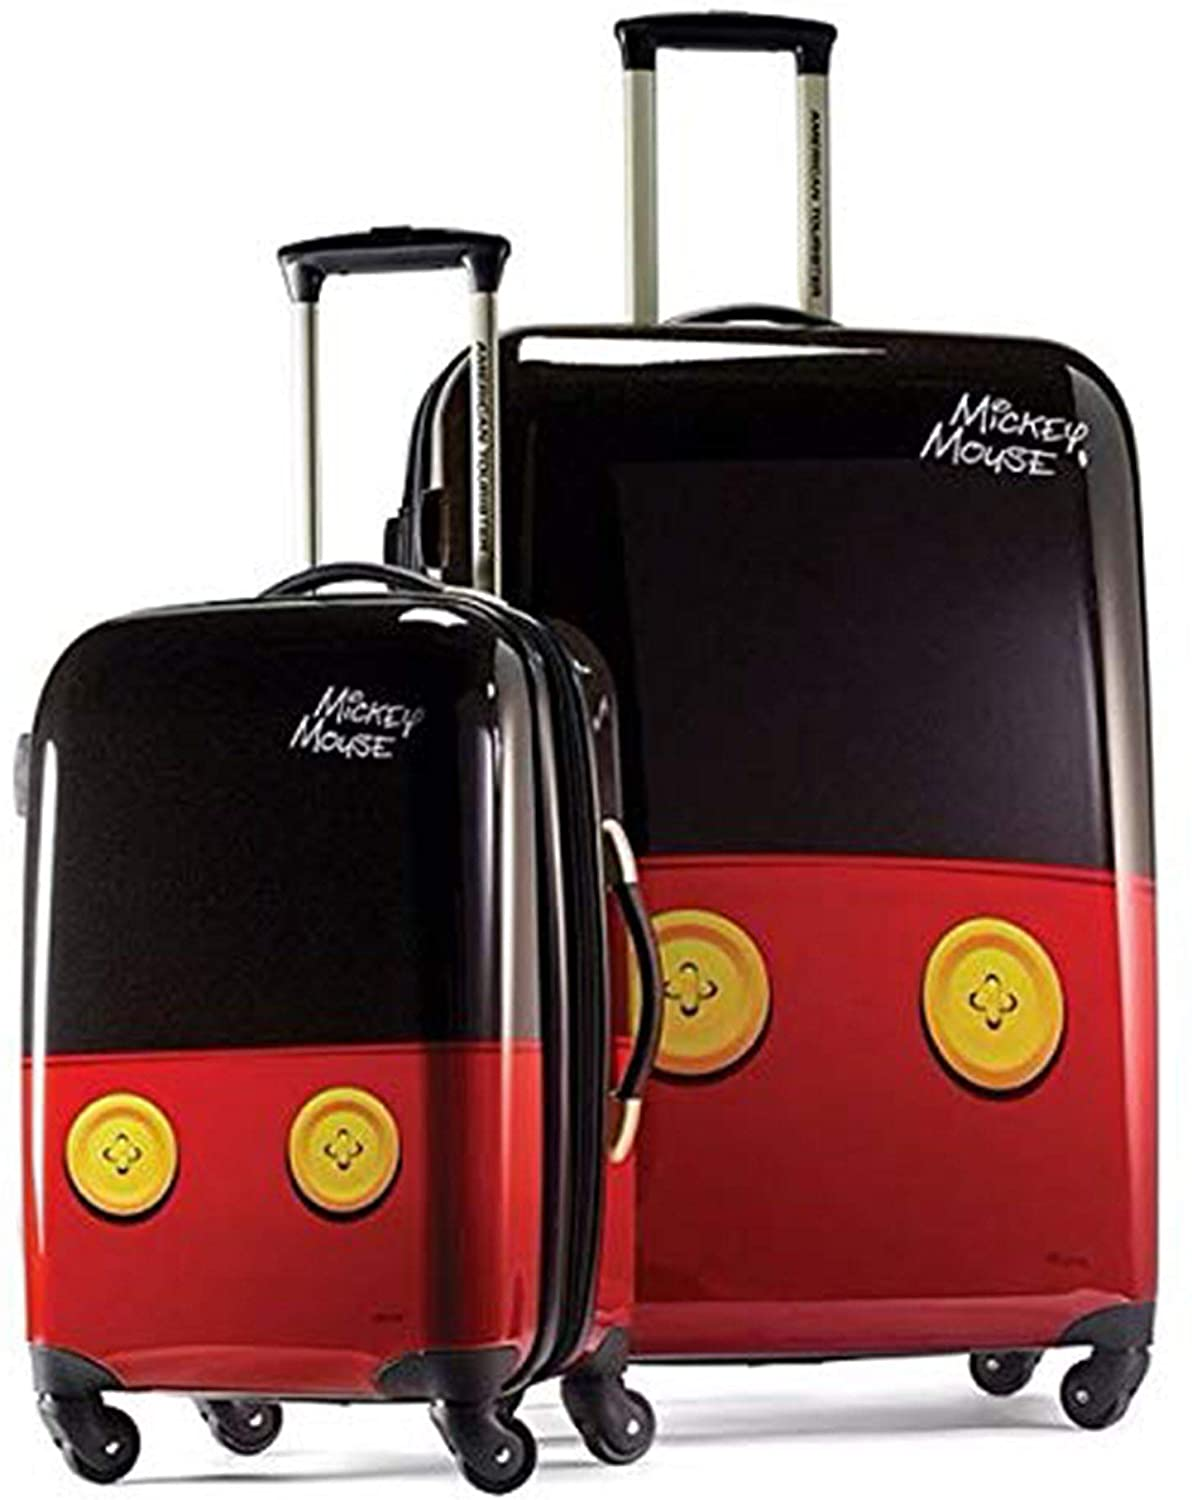 "American Tourister Disney Hardside Luggage with Spinner Wheels, Mickey Mouse Pants Set 21/28""  $97.20 Amazon"